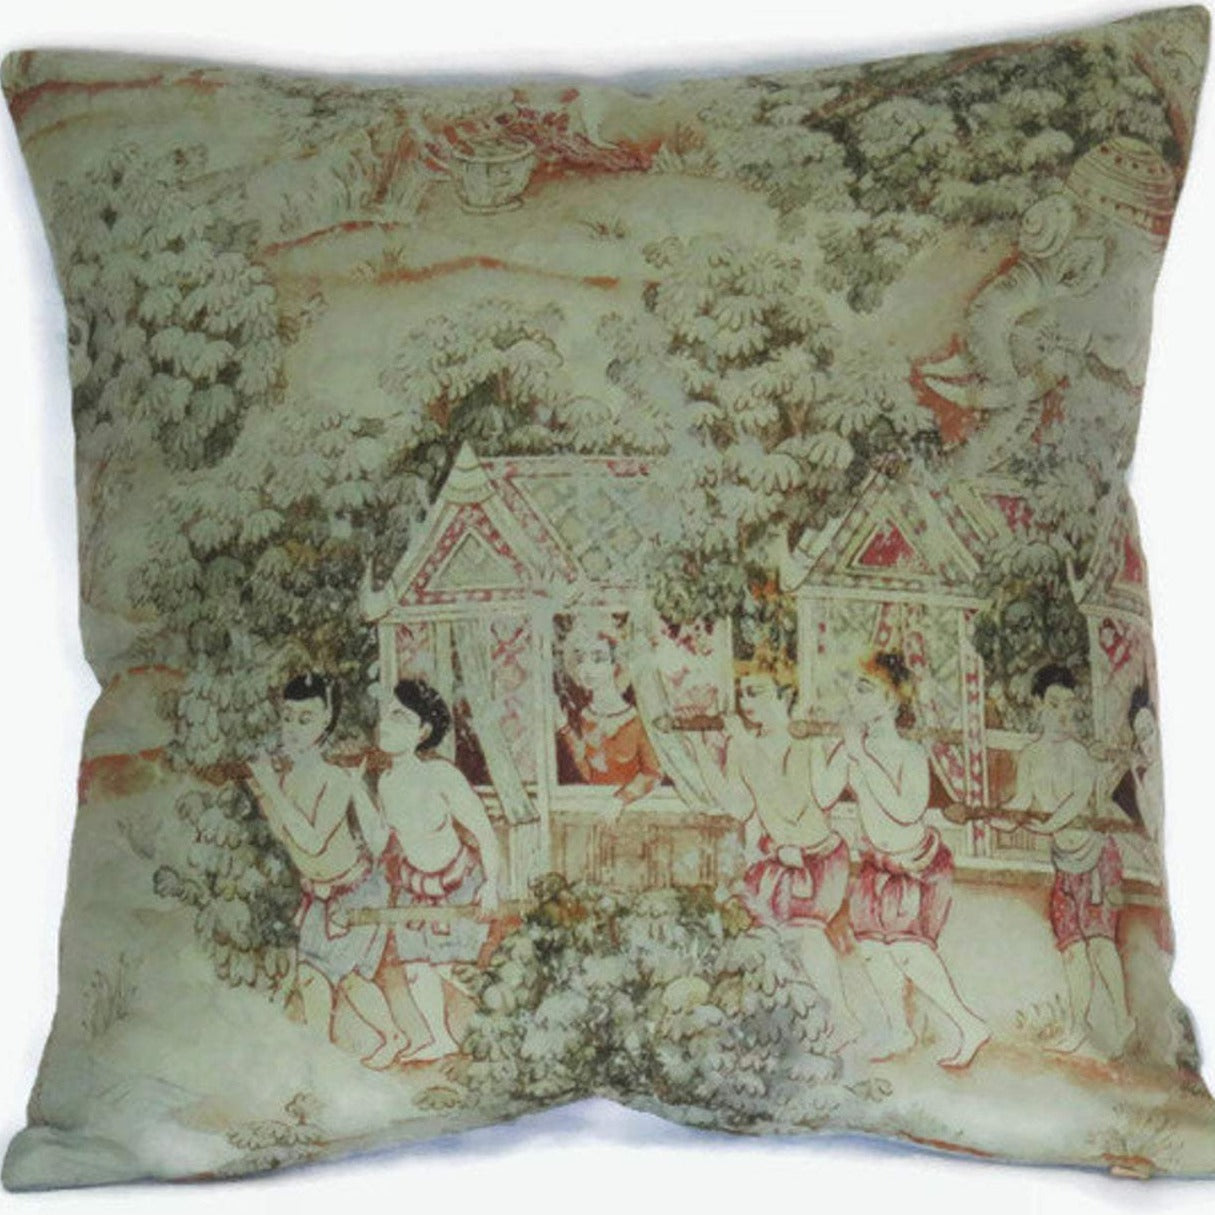 jims dream procession pillow cover